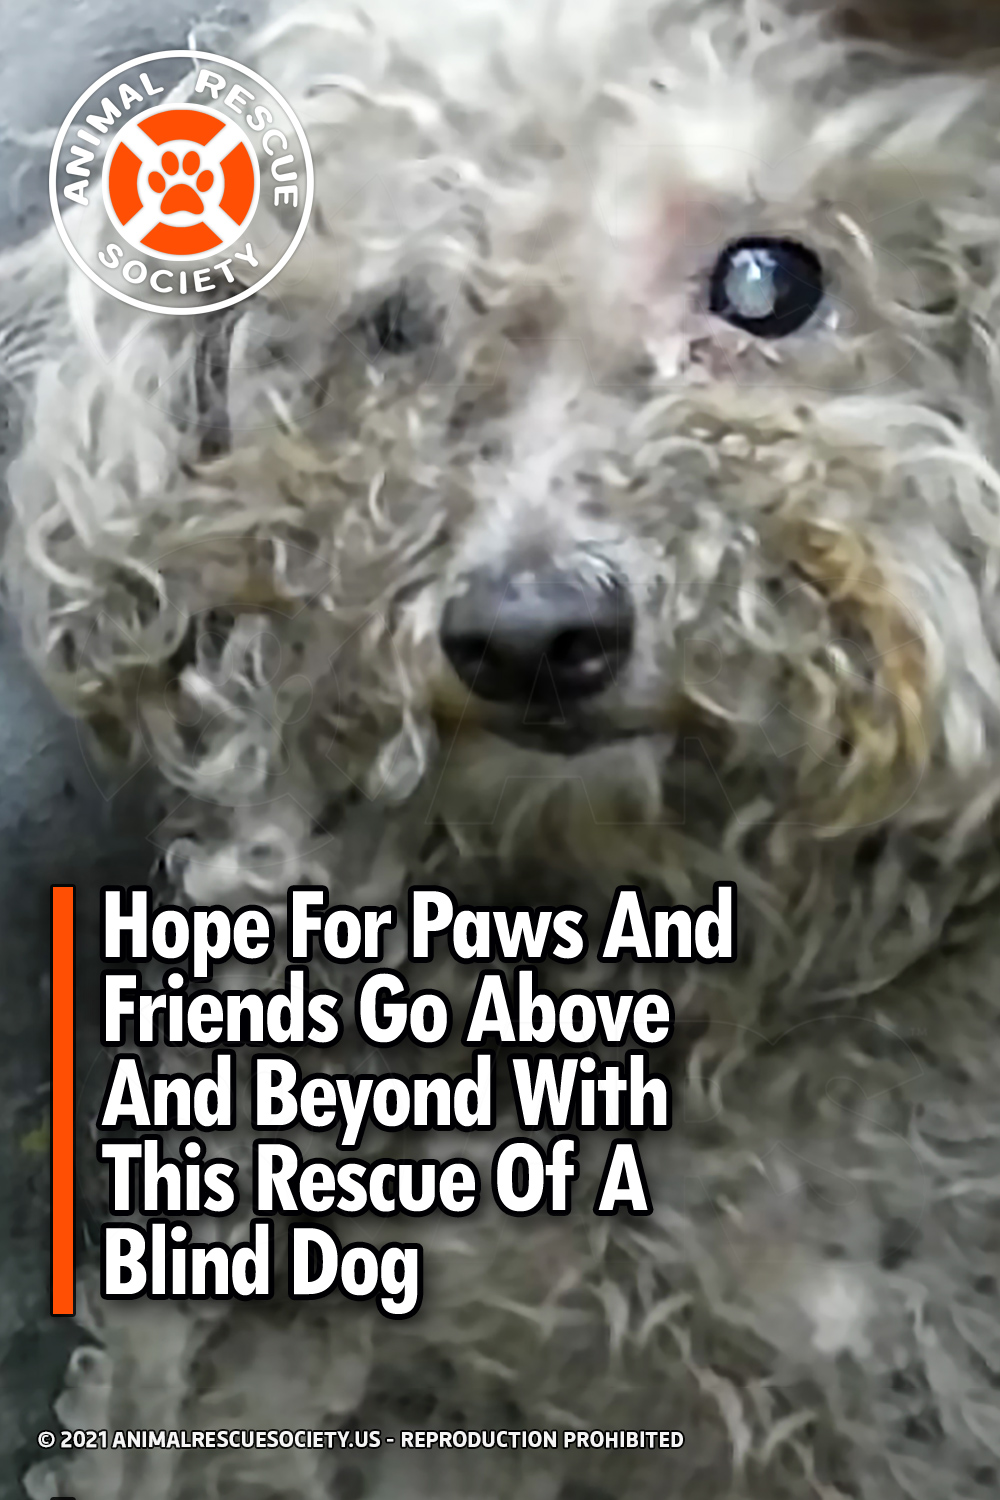 Hope For Paws And Friends Go Above And Beyond With This Rescue Of A Blind Dog